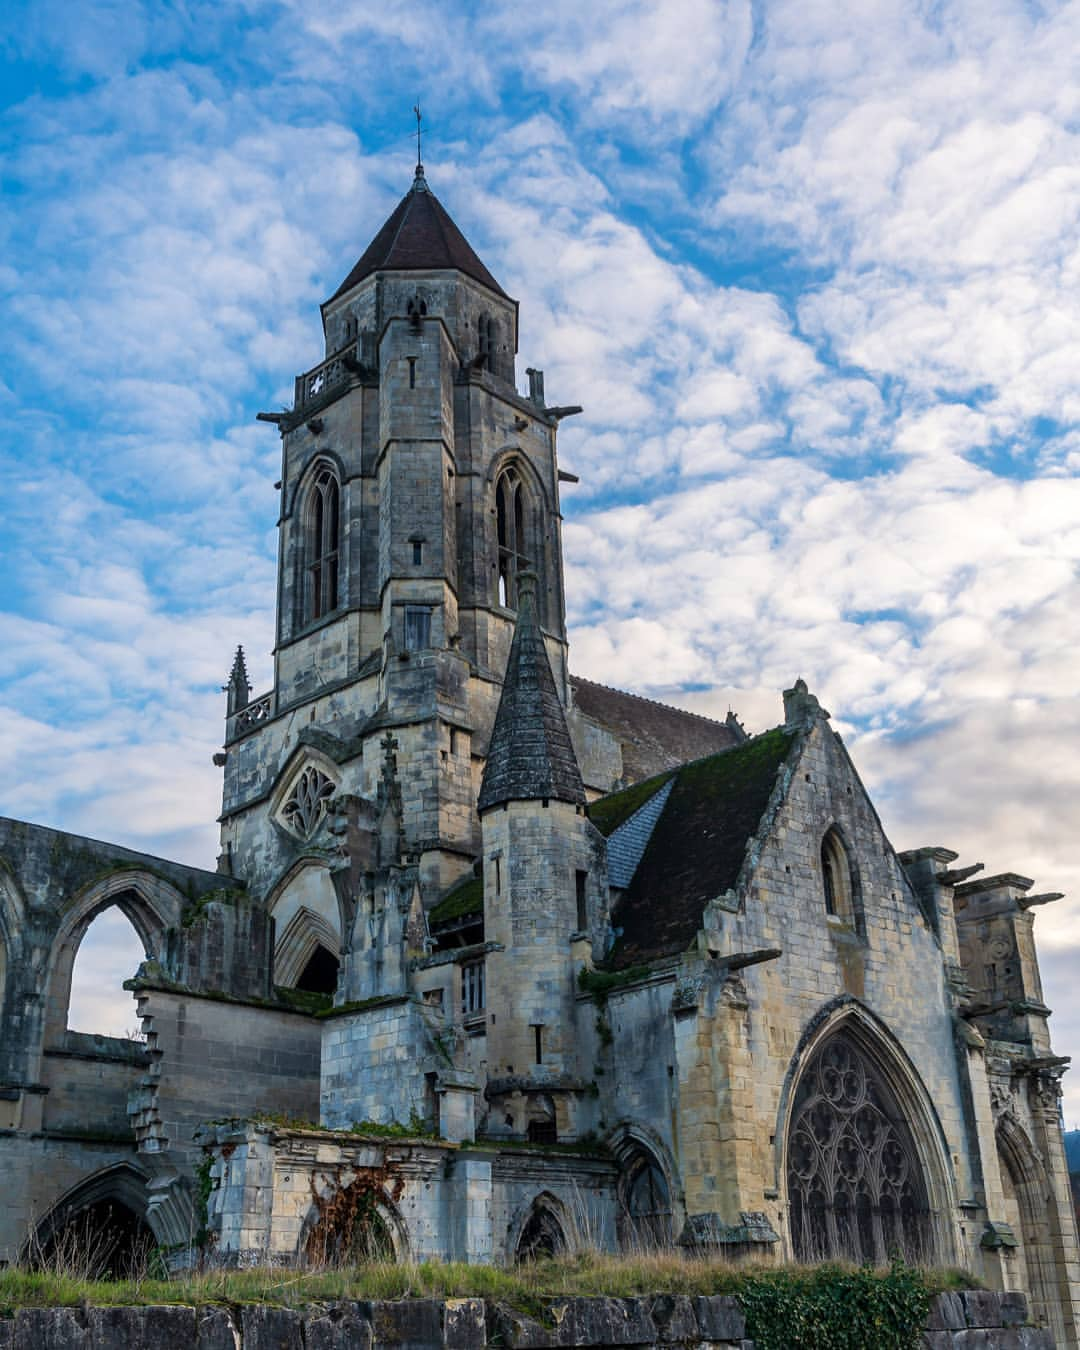 A Famous Spot In France, Abandoned Church Of Saint-Étienne